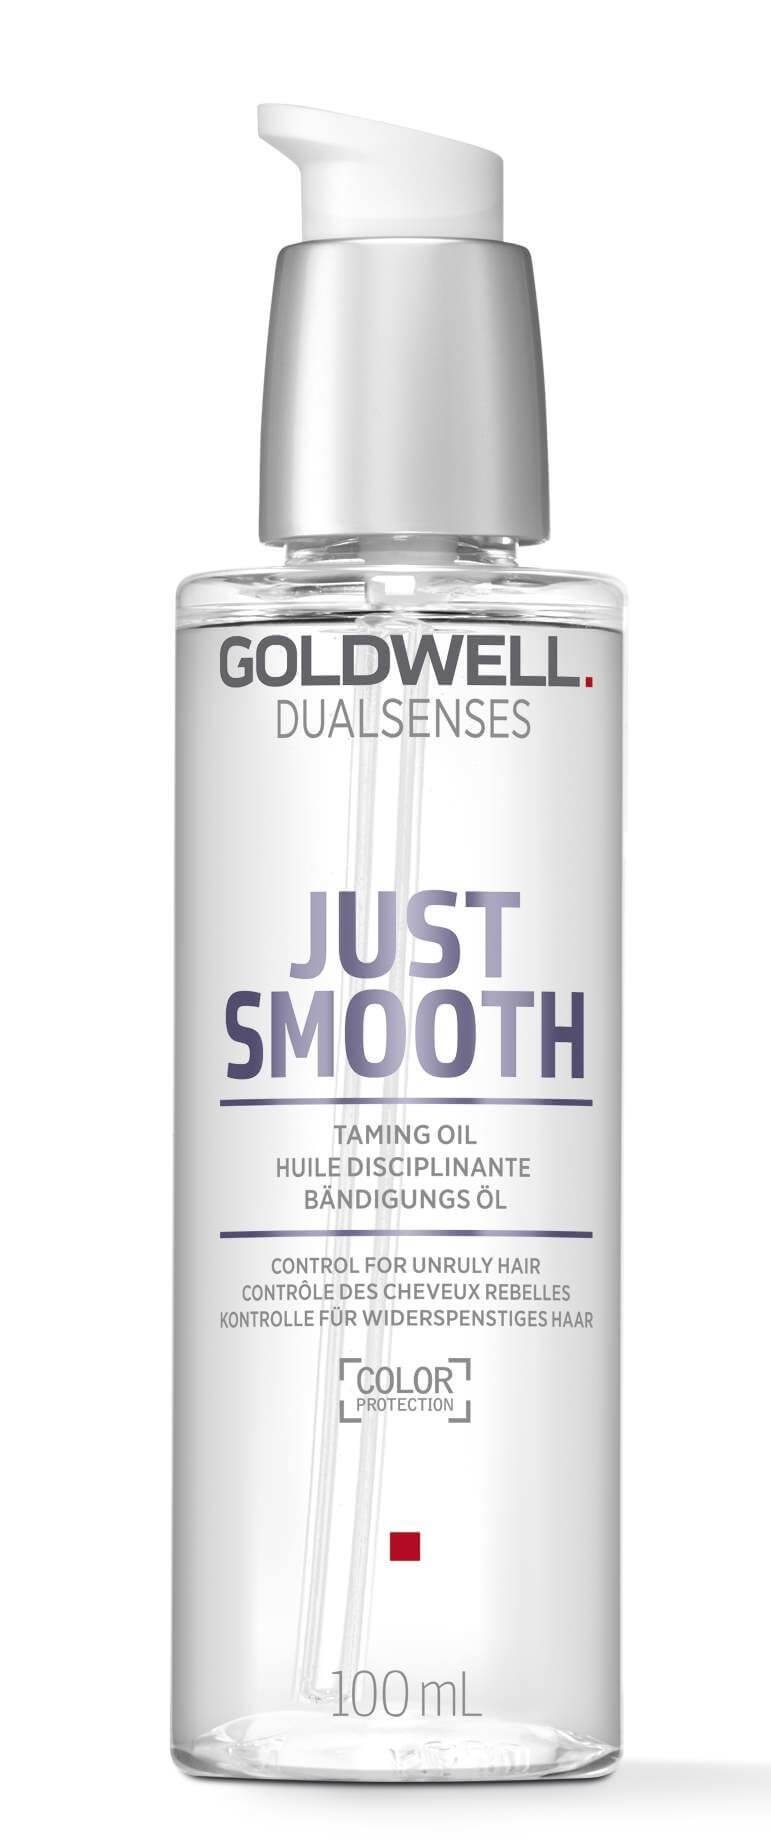 Dualsenses Just Smooth Taming Oil.